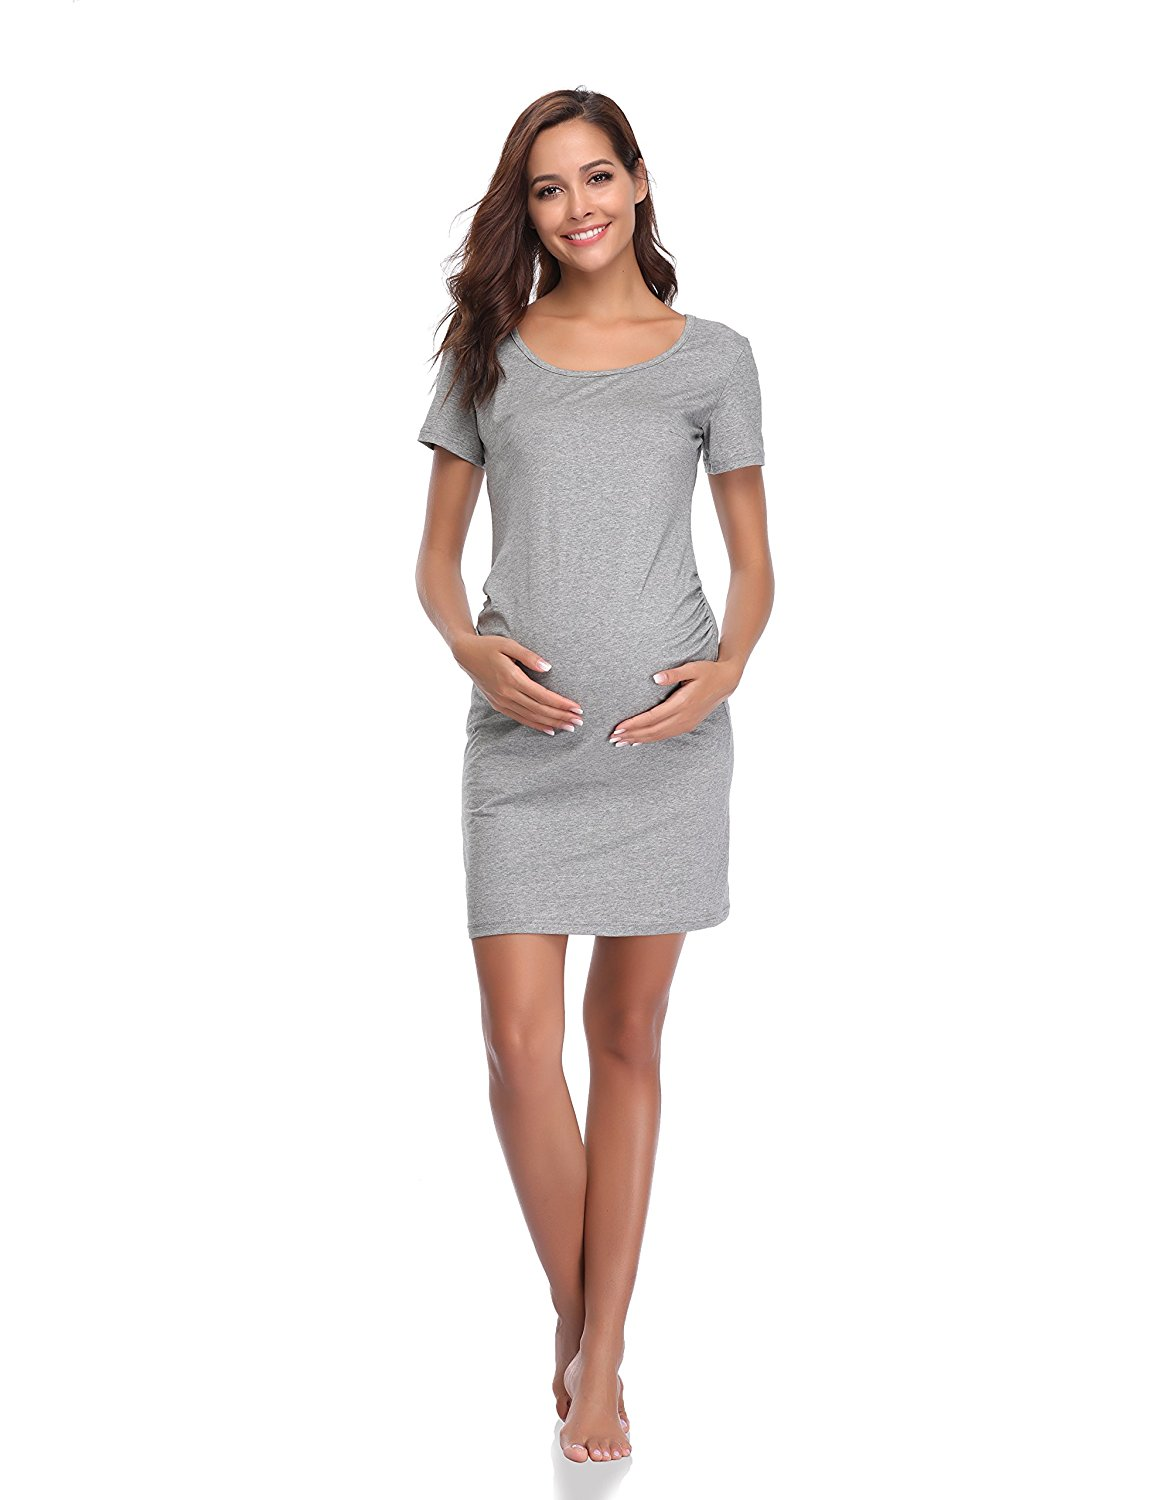 c8e1328670df6 Best Maternity Dresses Under $40